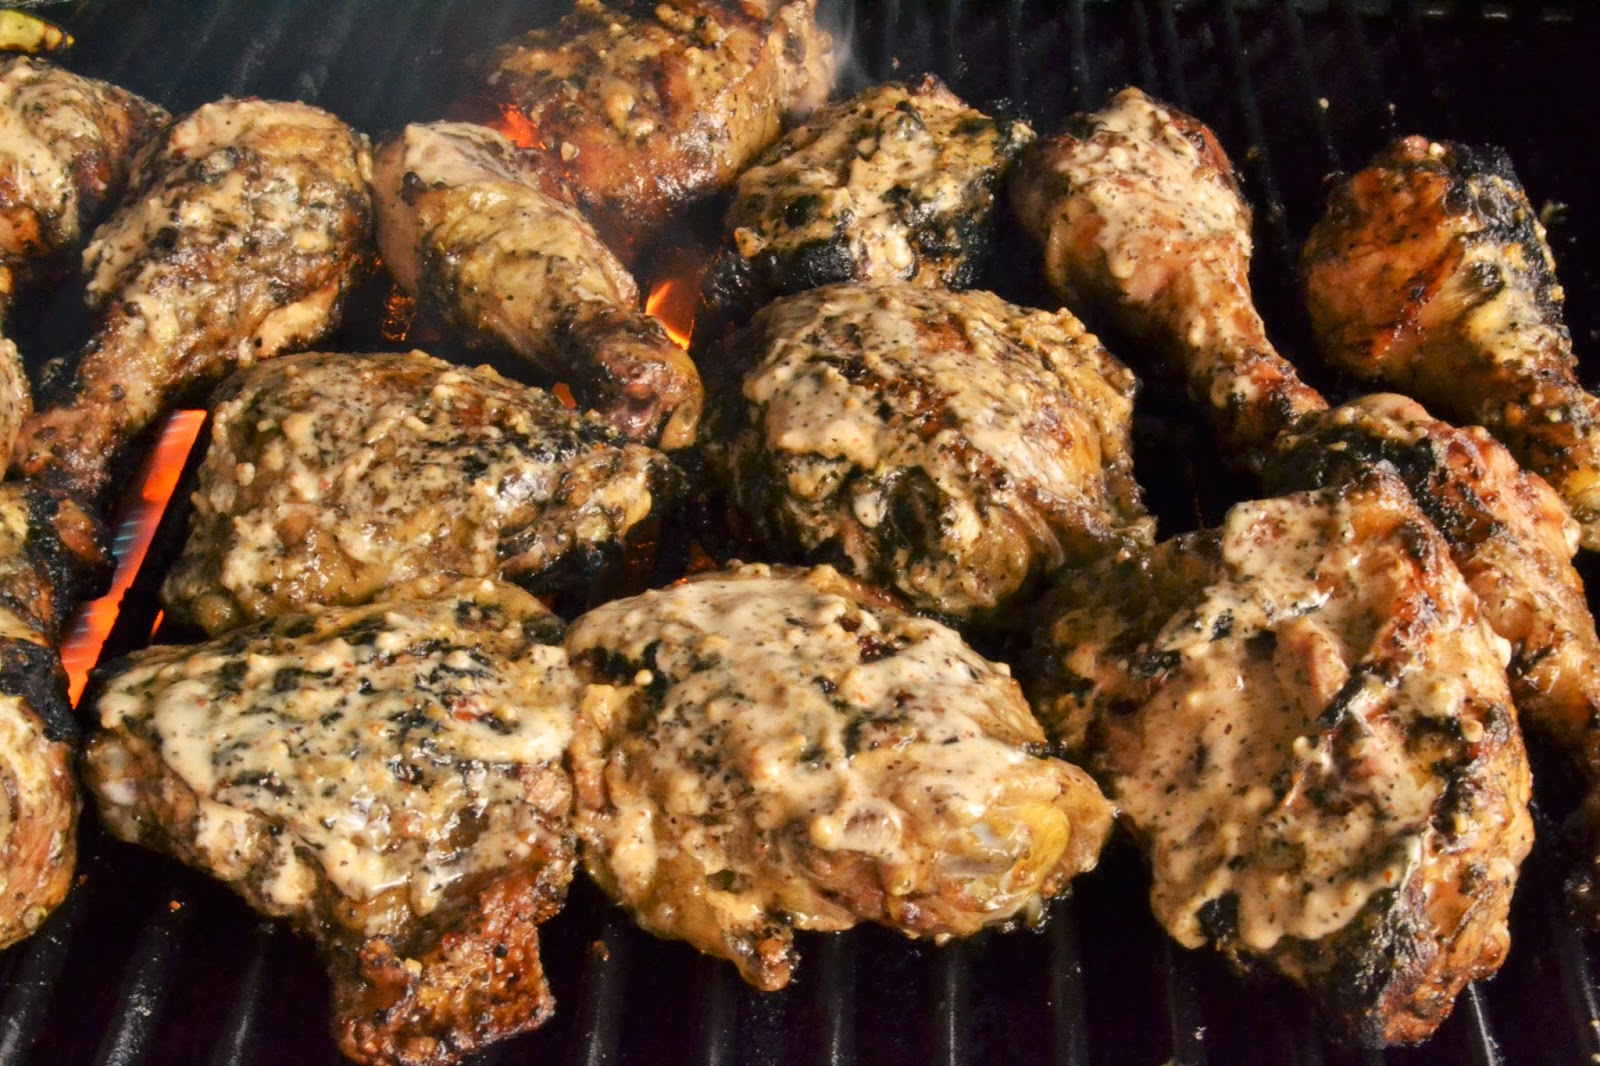 7kidsathome: Grilled Chicken with White BBQ Sauce